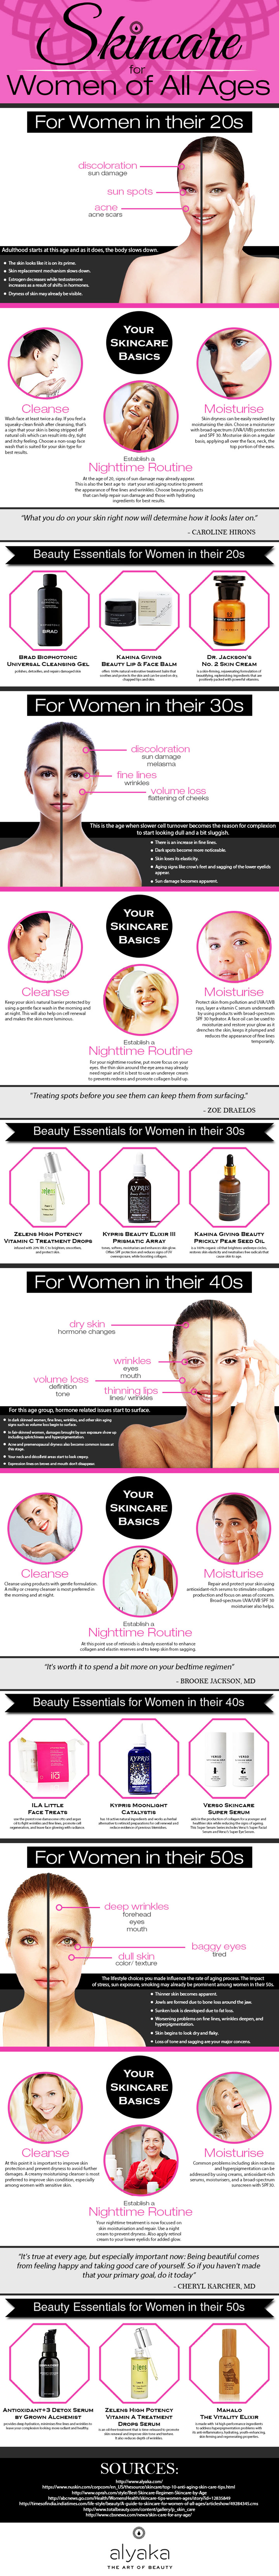 Skincare for Women of All Ages - Beauty Infographic